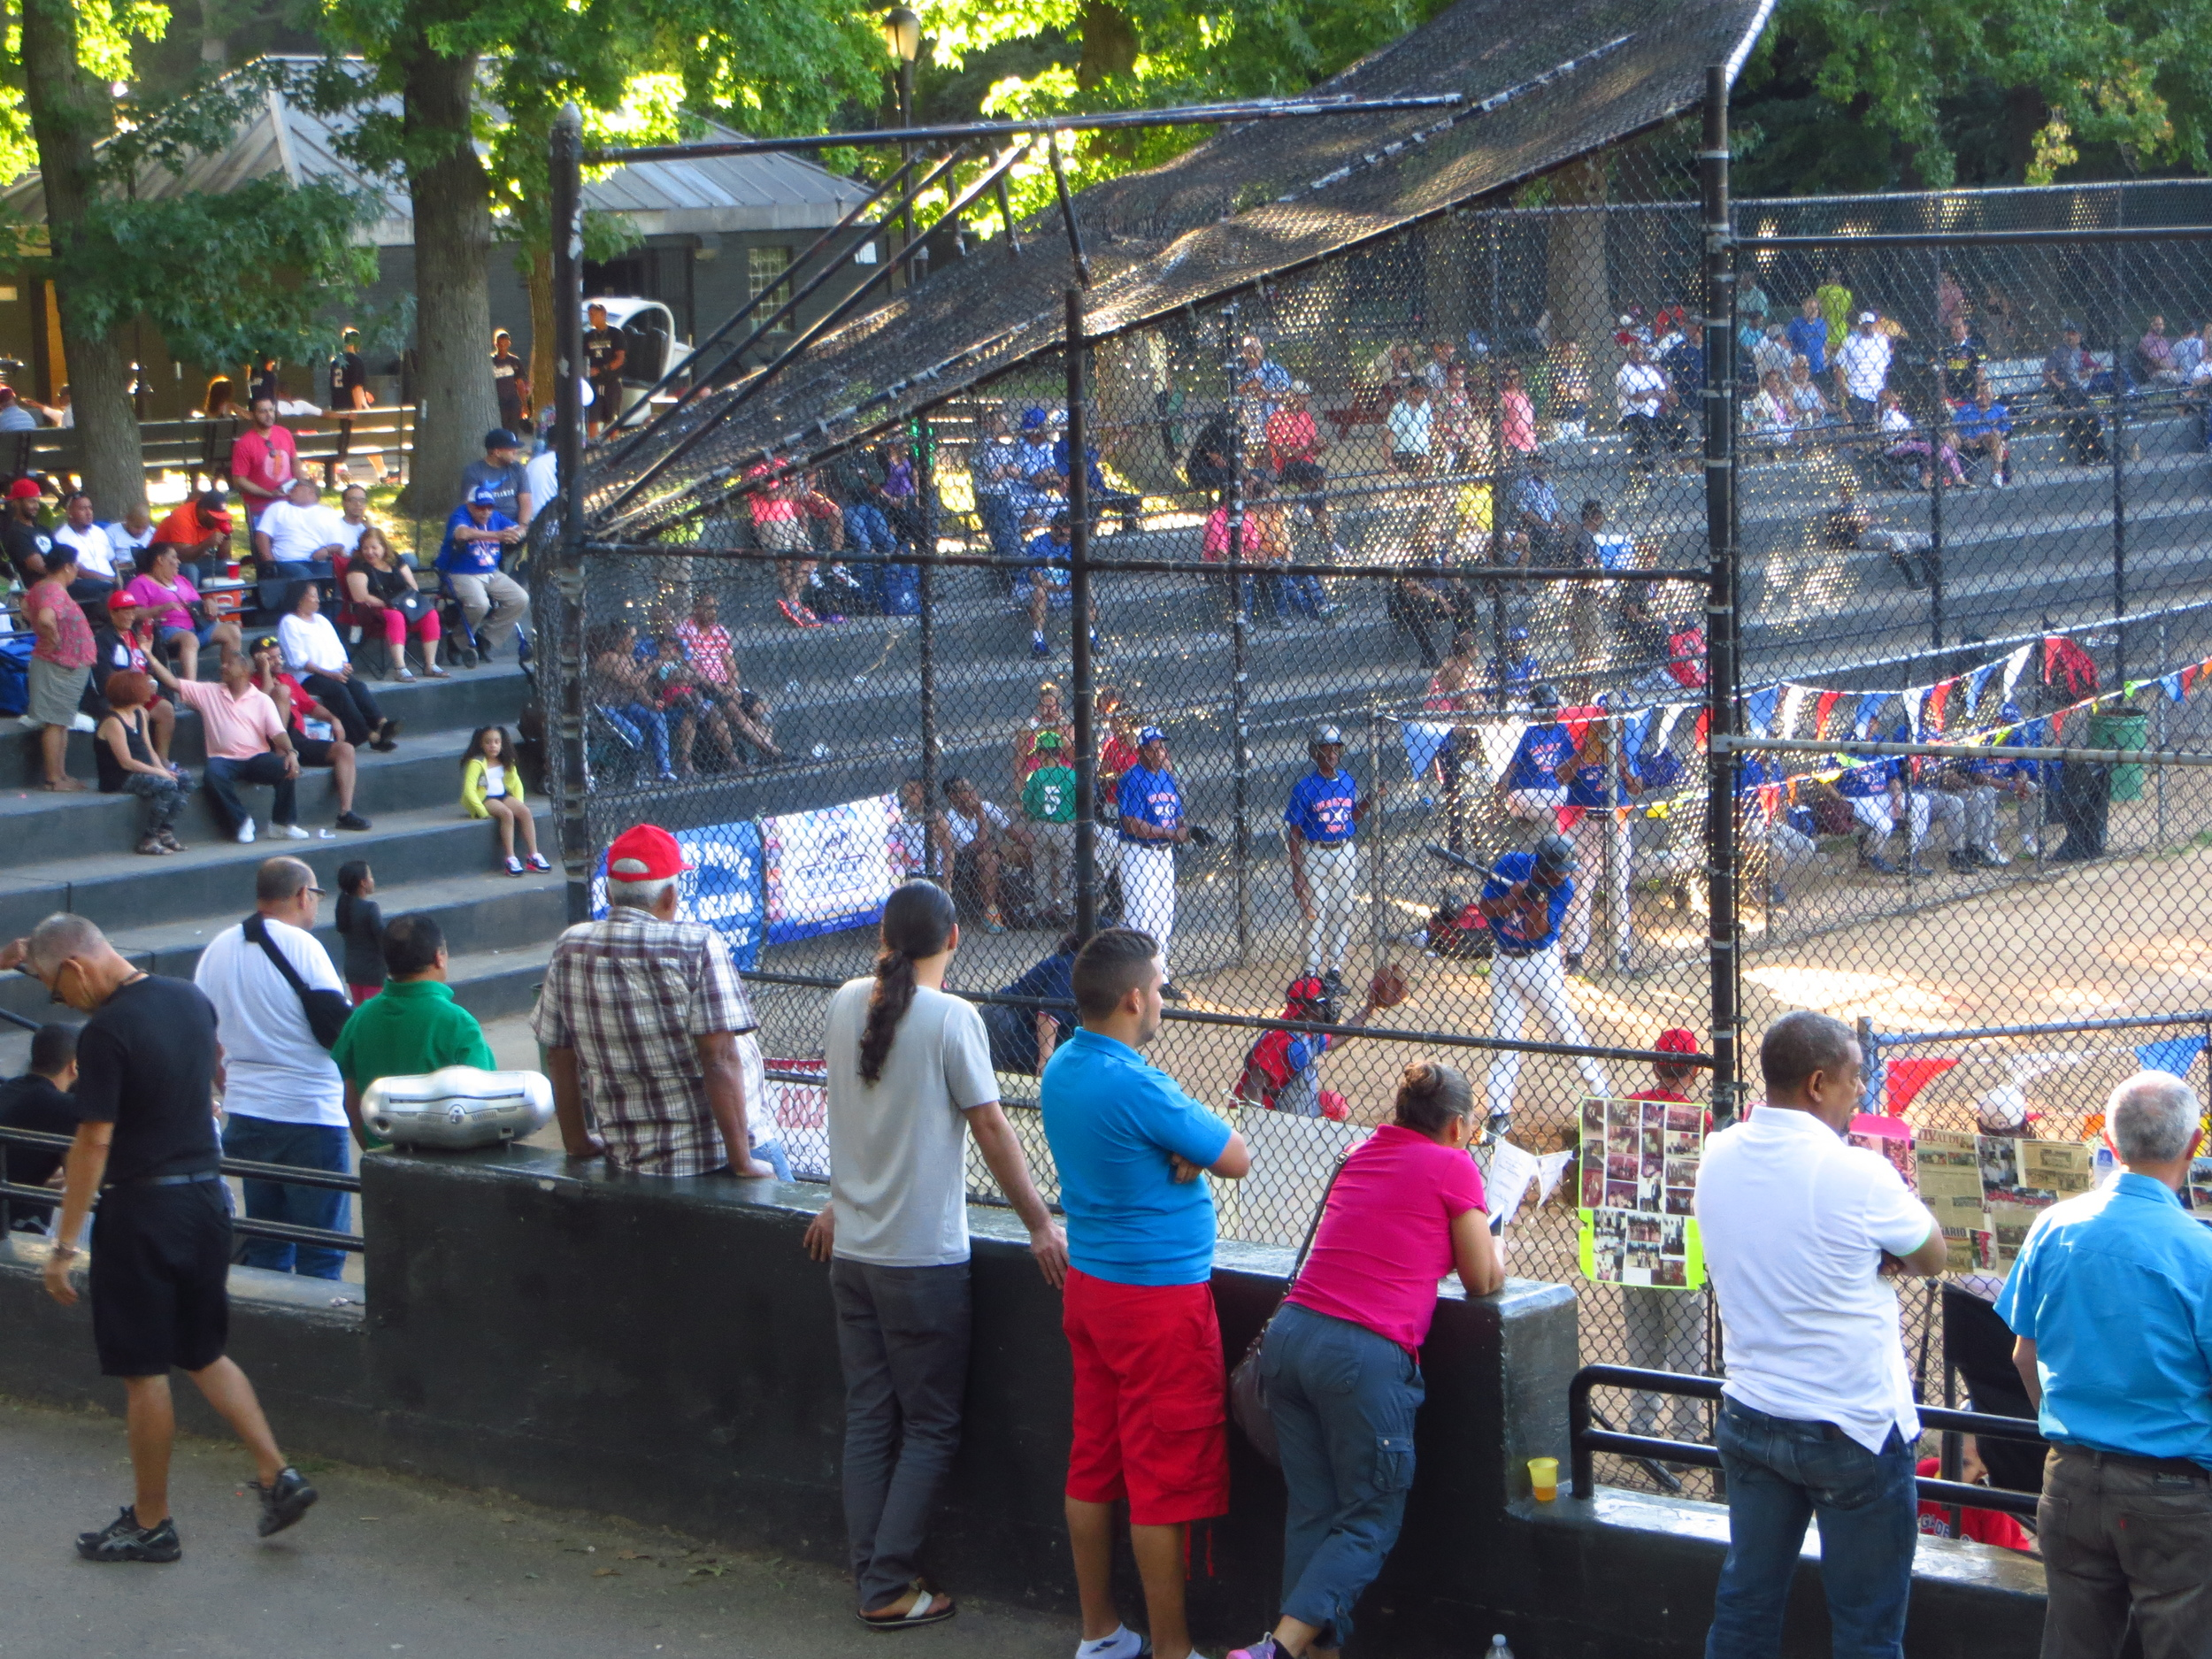 Well attended baseball game in Inwood Hill Park